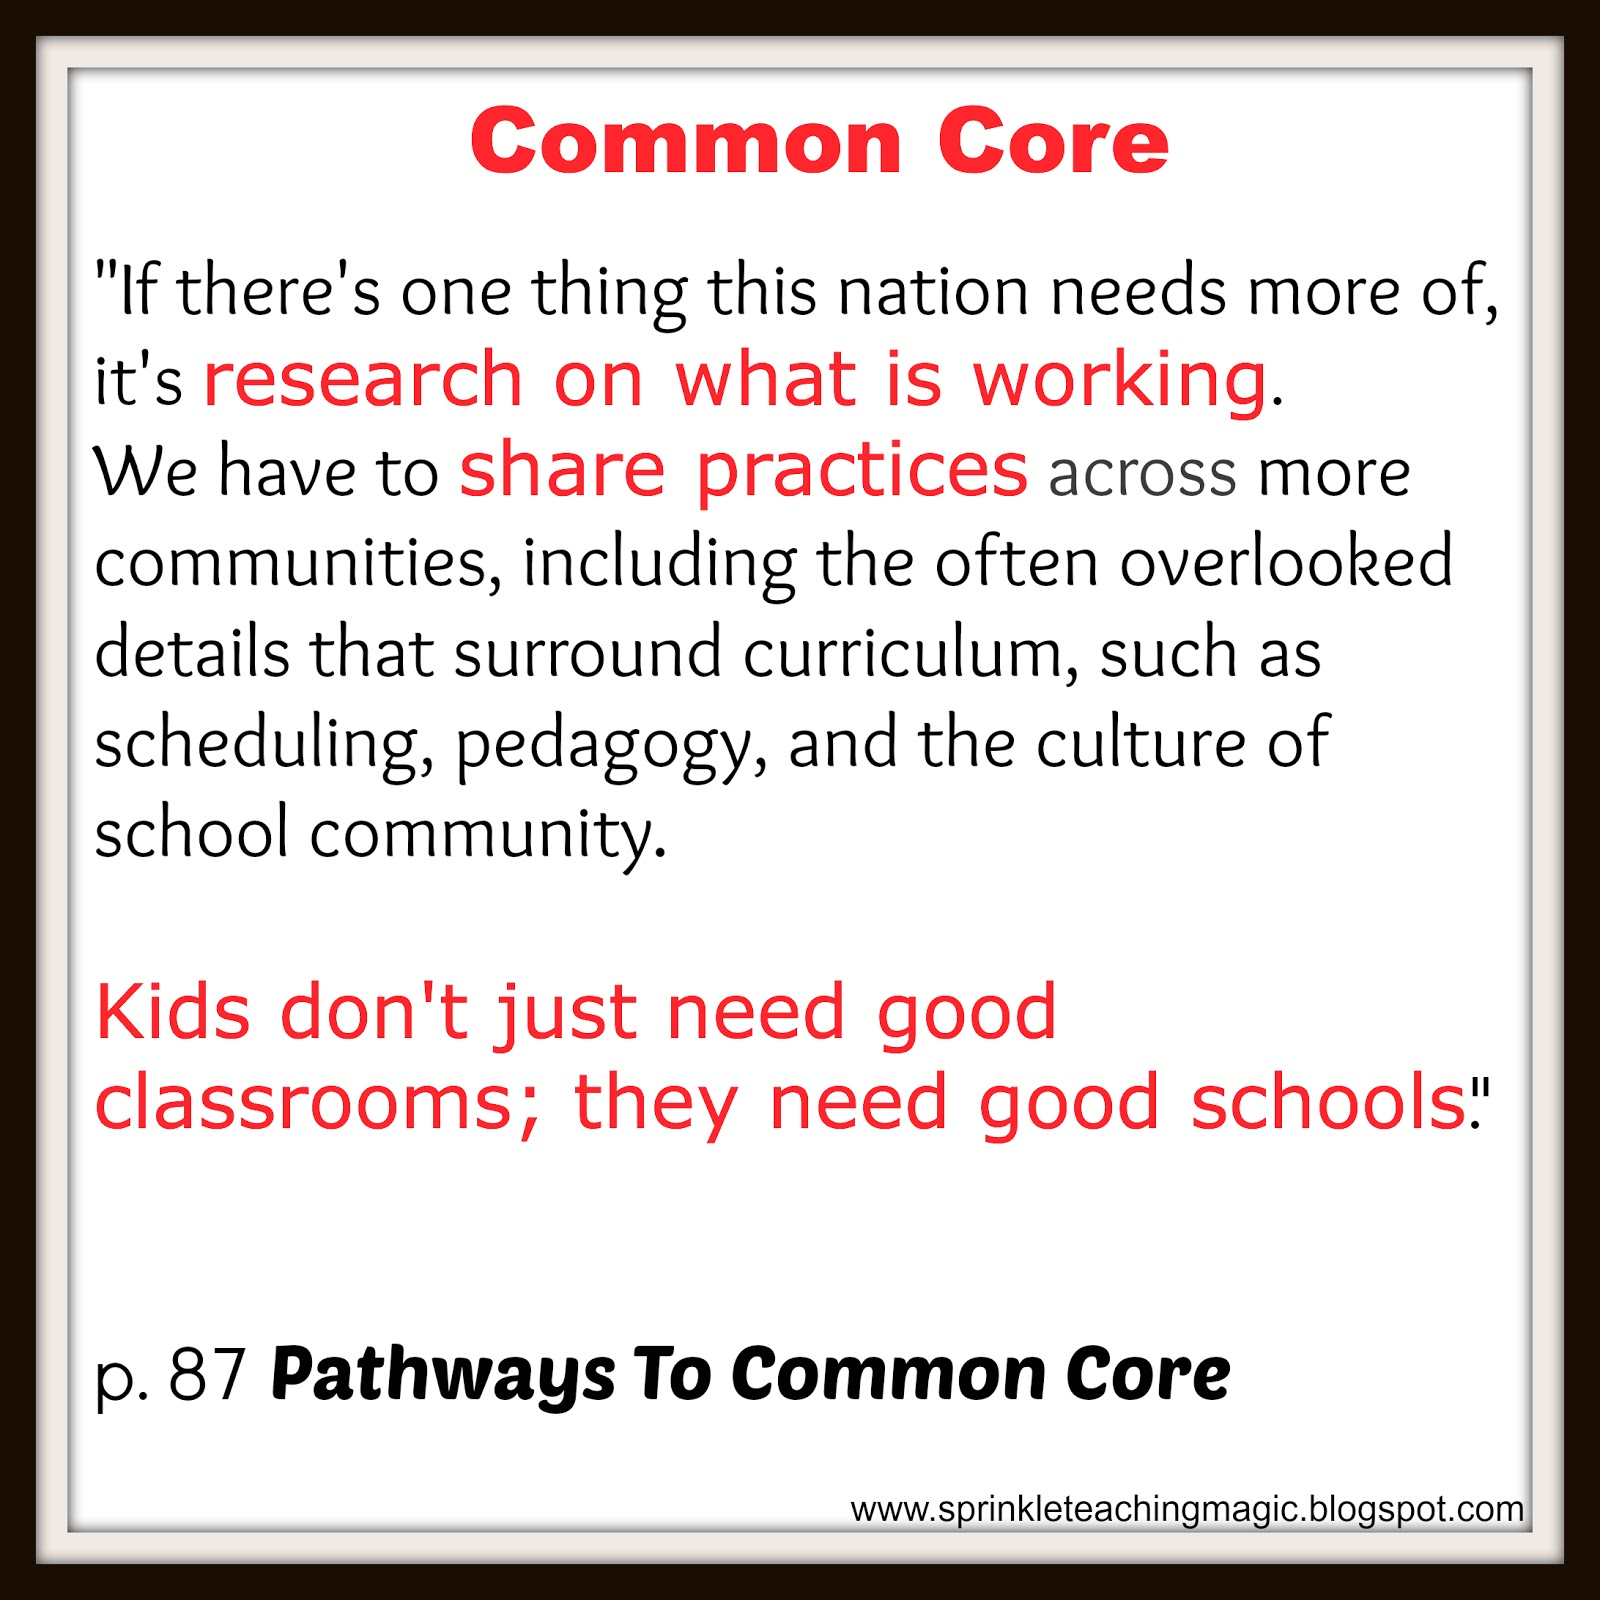 common core standards Save time with easy templates align lessons to common core & 50 state standards organize with unit plans share with colleagues create unit plans.